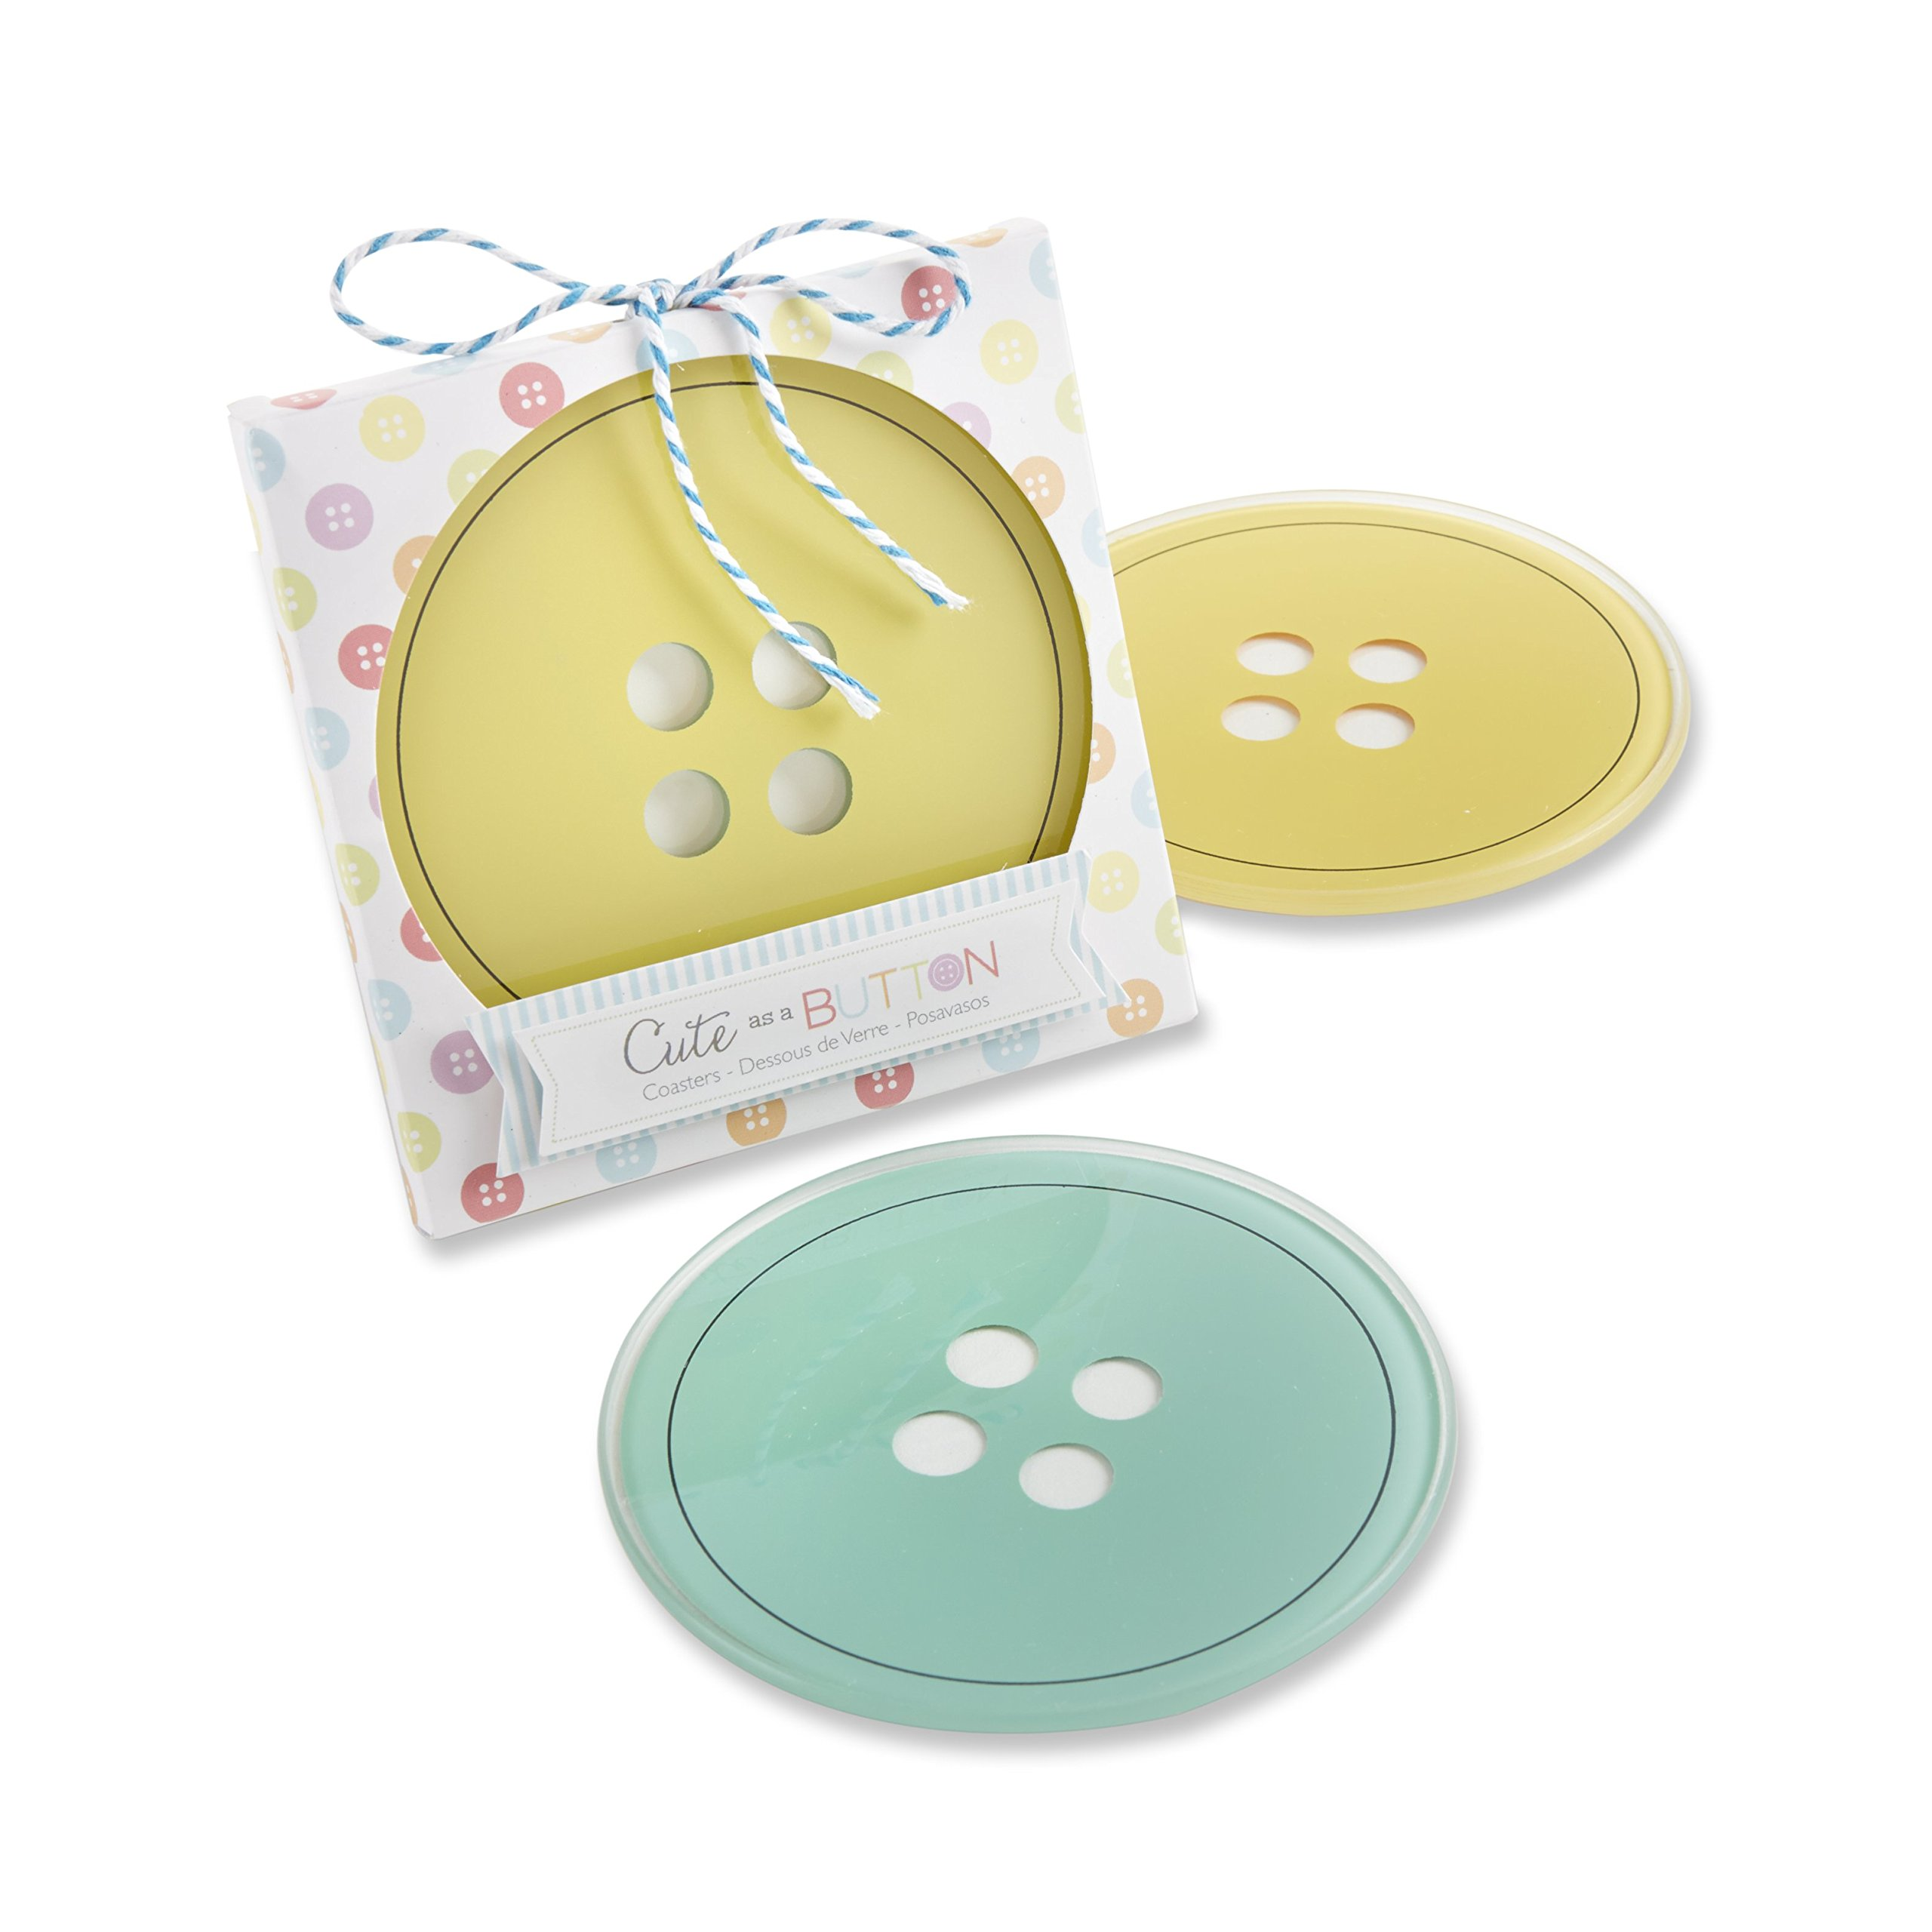 Kate Aspen Cute as A Button Glass Coasters